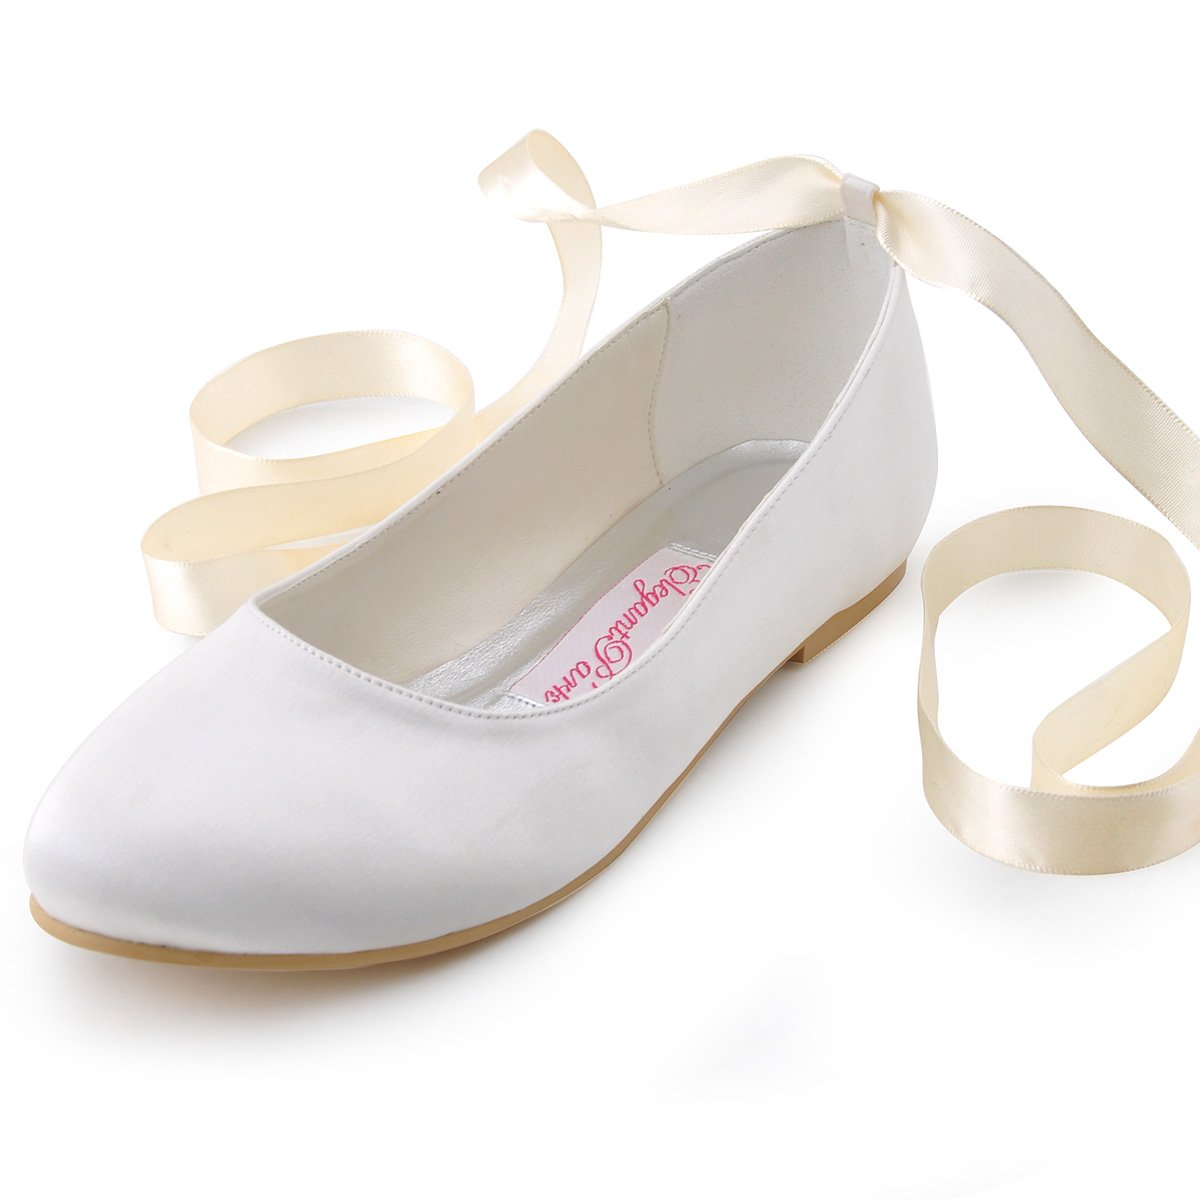 ElegantPark Women Comfort Flats Closed Toe Ribbon Tie Satin Wedding ...